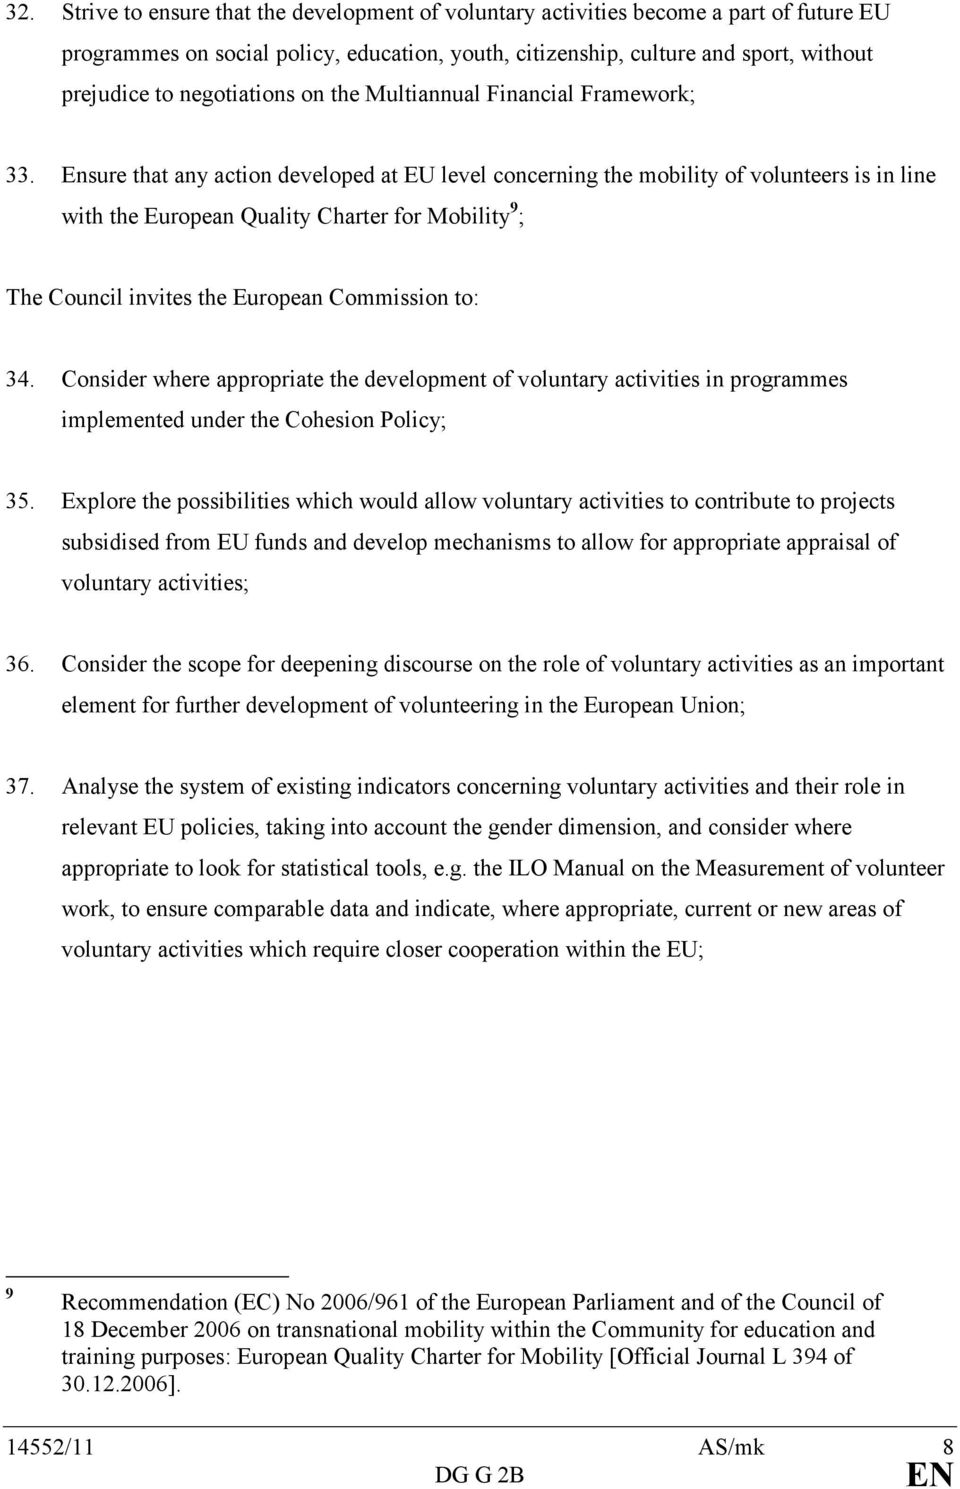 Ensure that any action developed at EU level concerning the mobility of volunteers is in line with the European Quality Charter for Mobility 9 ; The Council invites the European Commission to: 34.